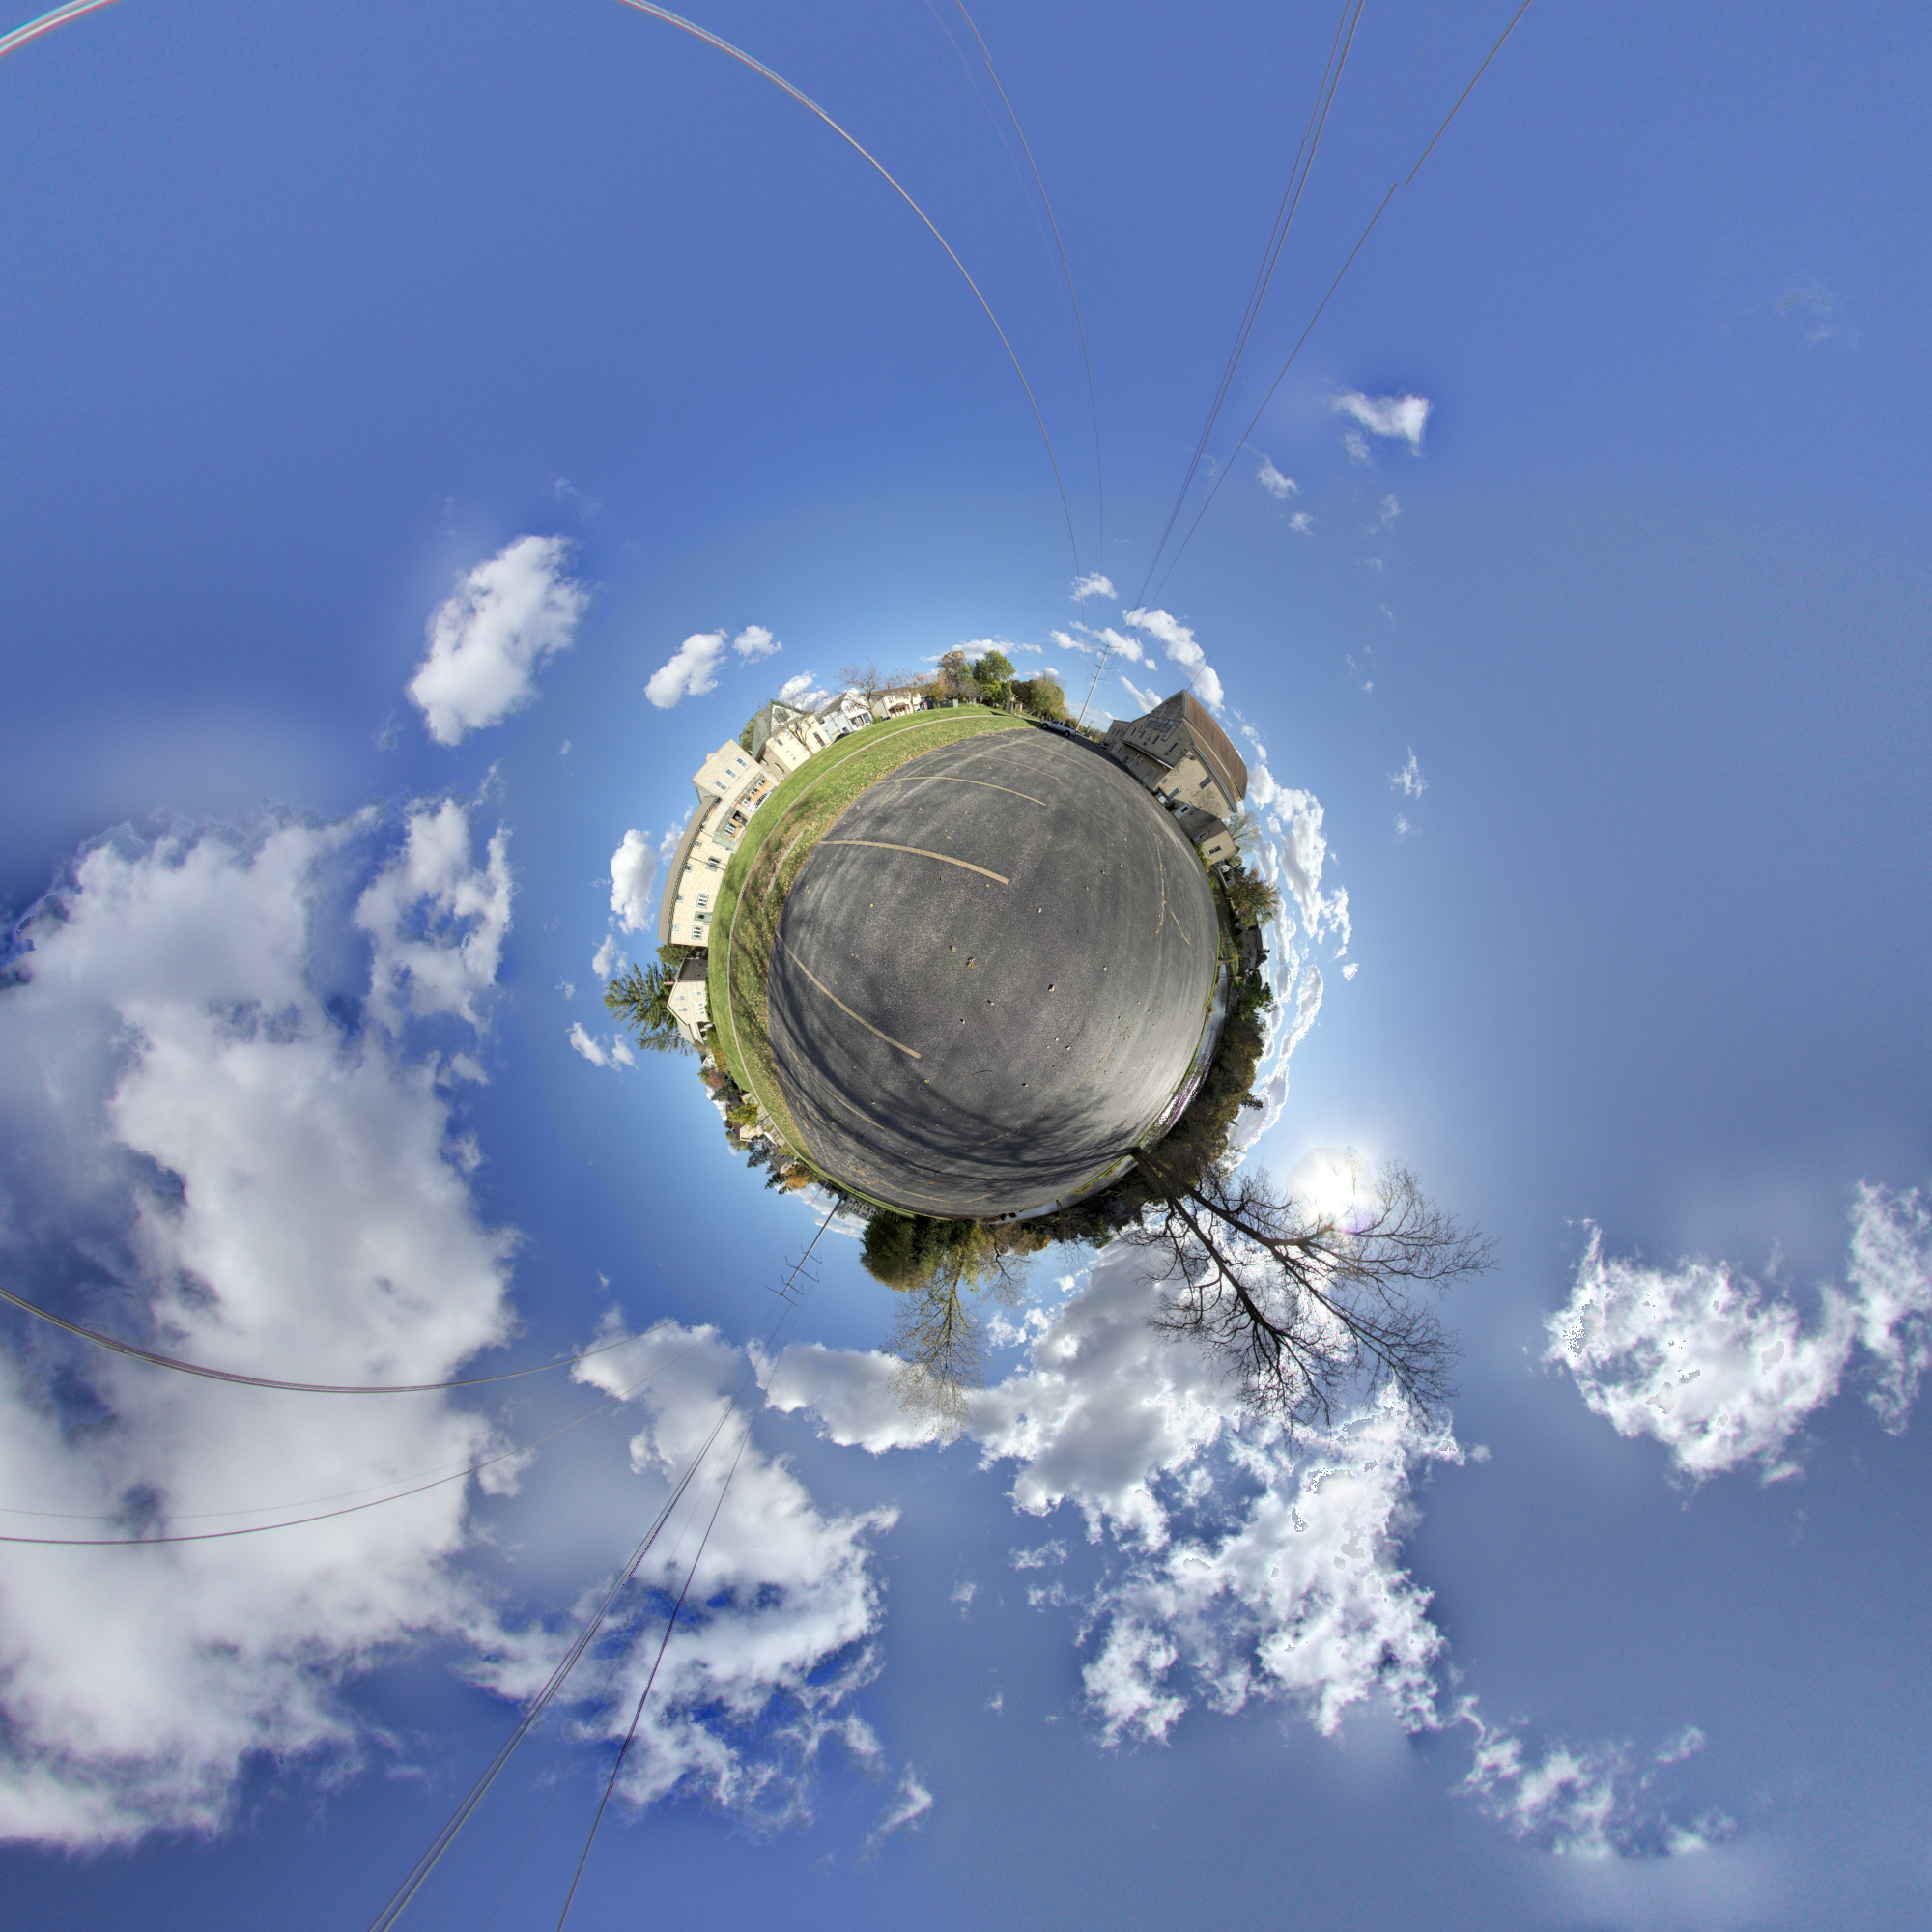 Pano 62 Featured Image